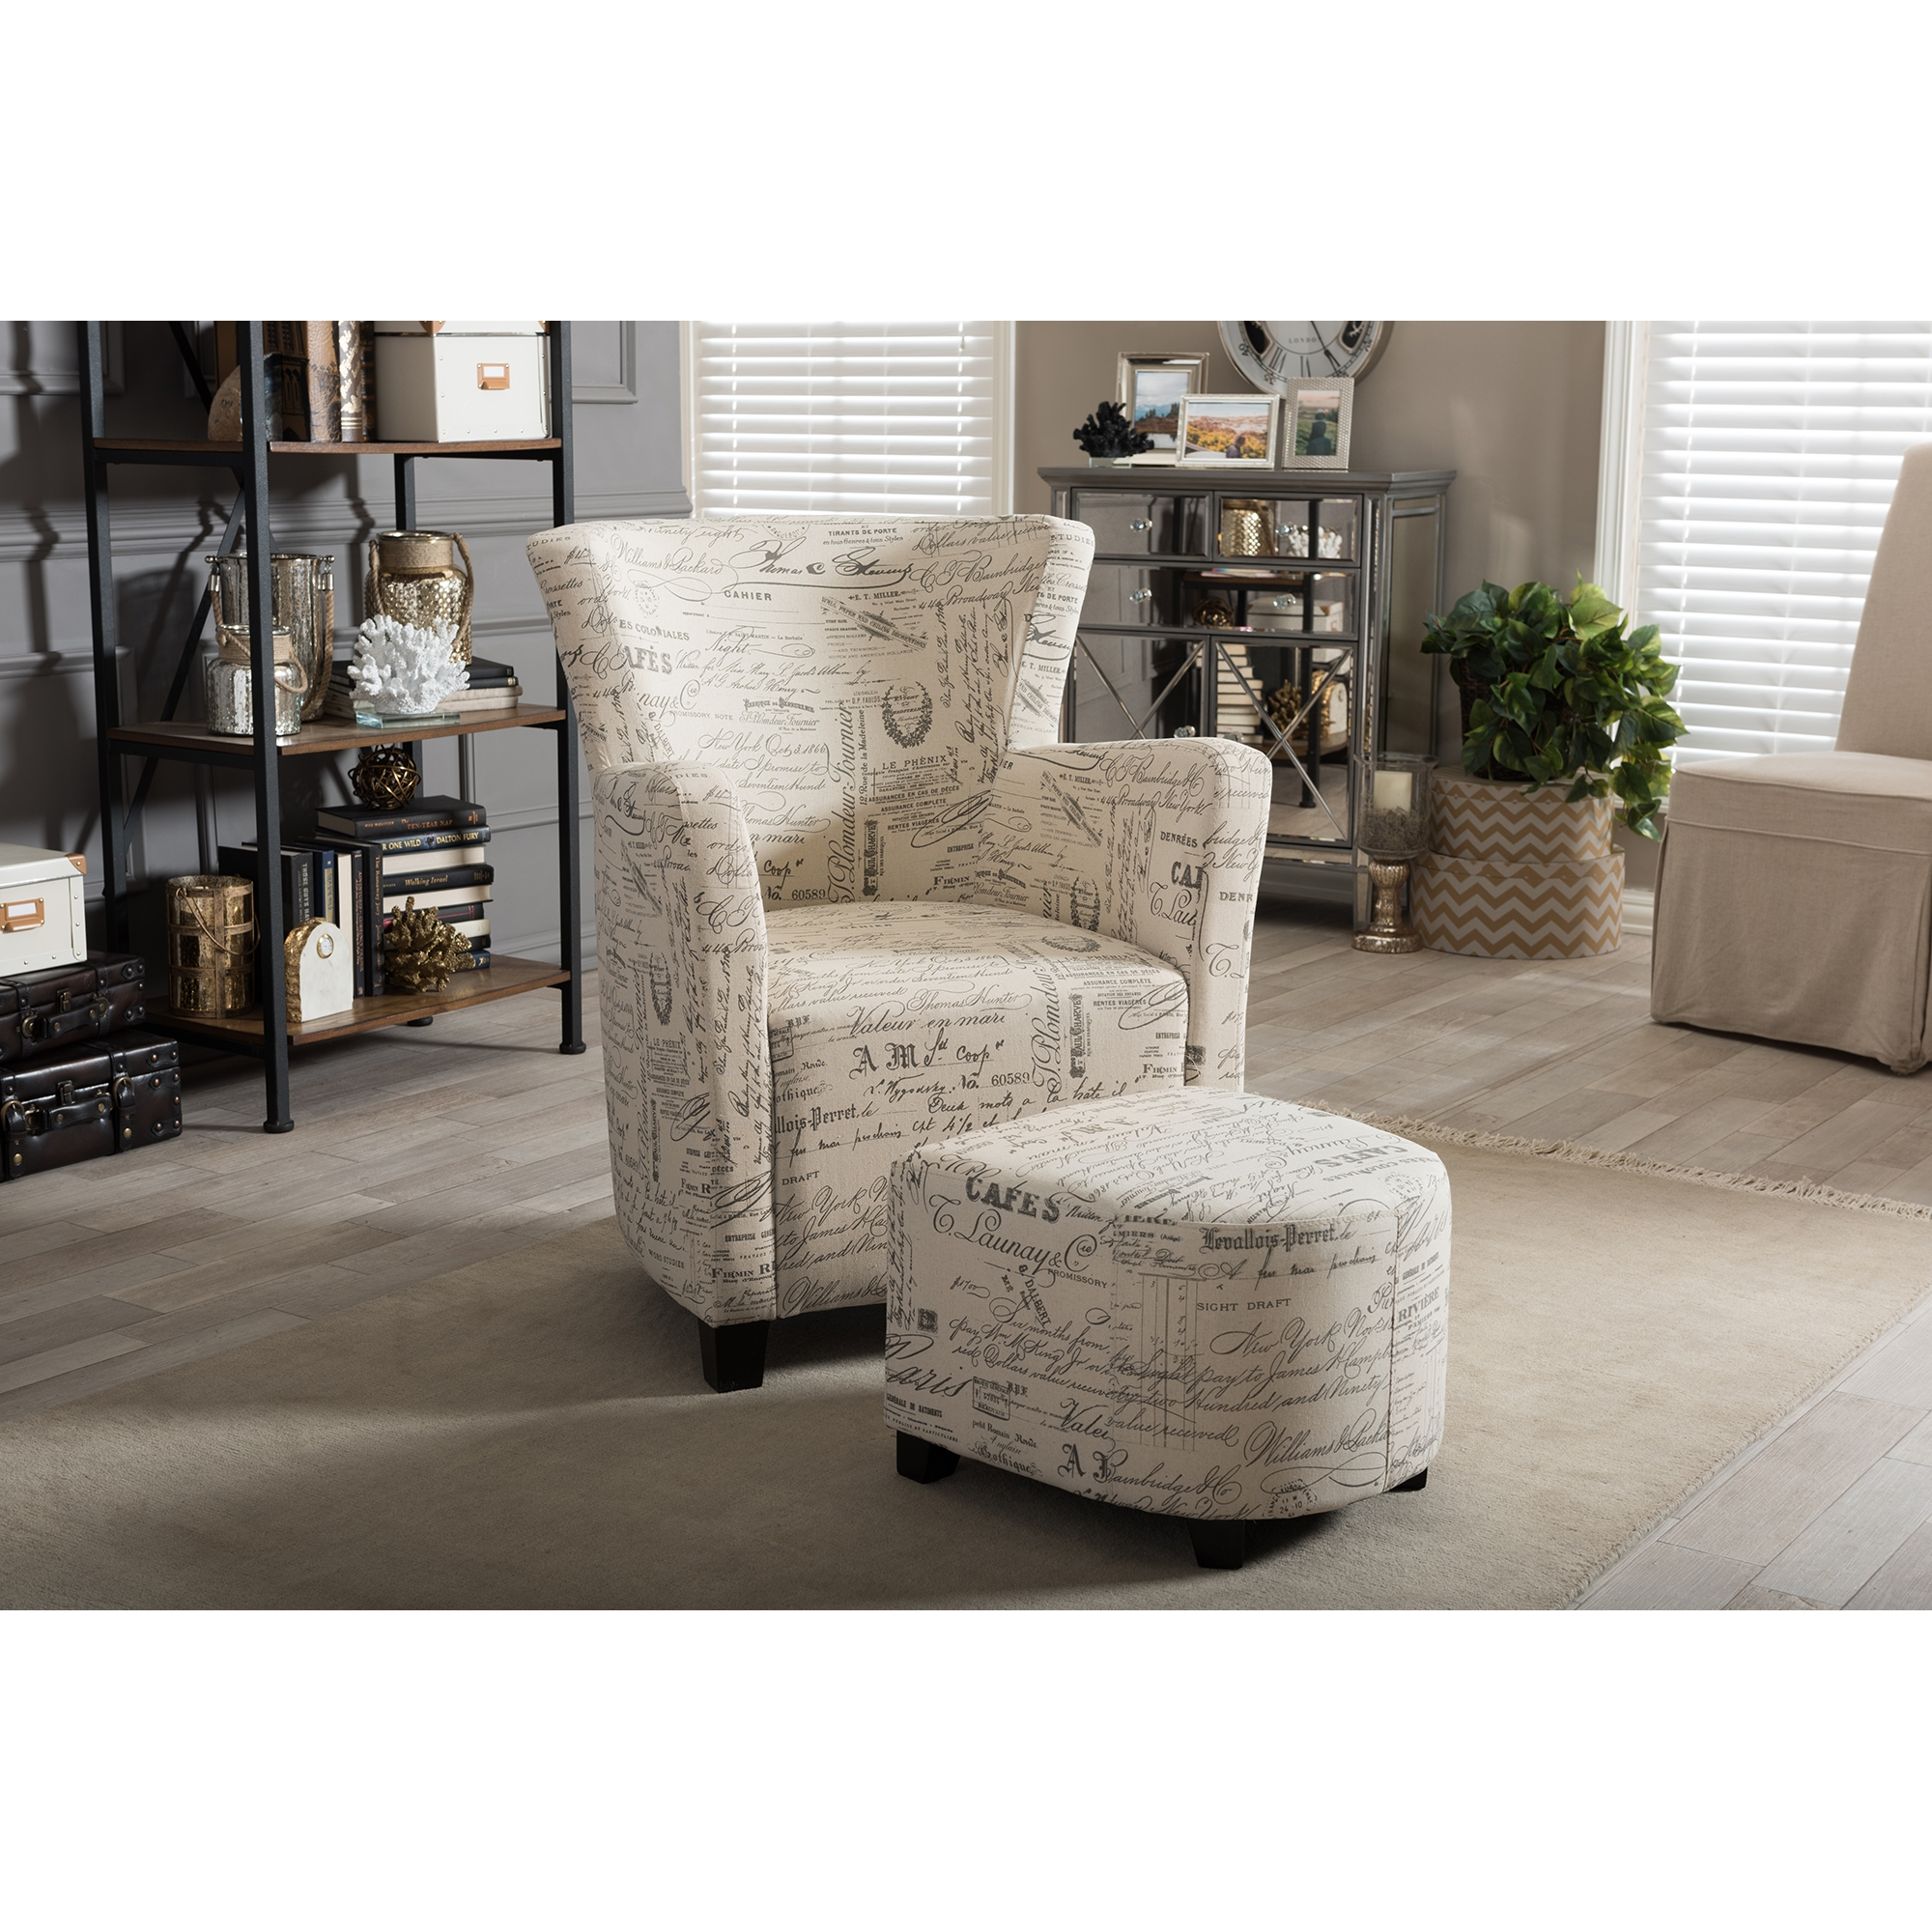 baxton studio benson french script patterned fabric club chair and ottoman set ws0710